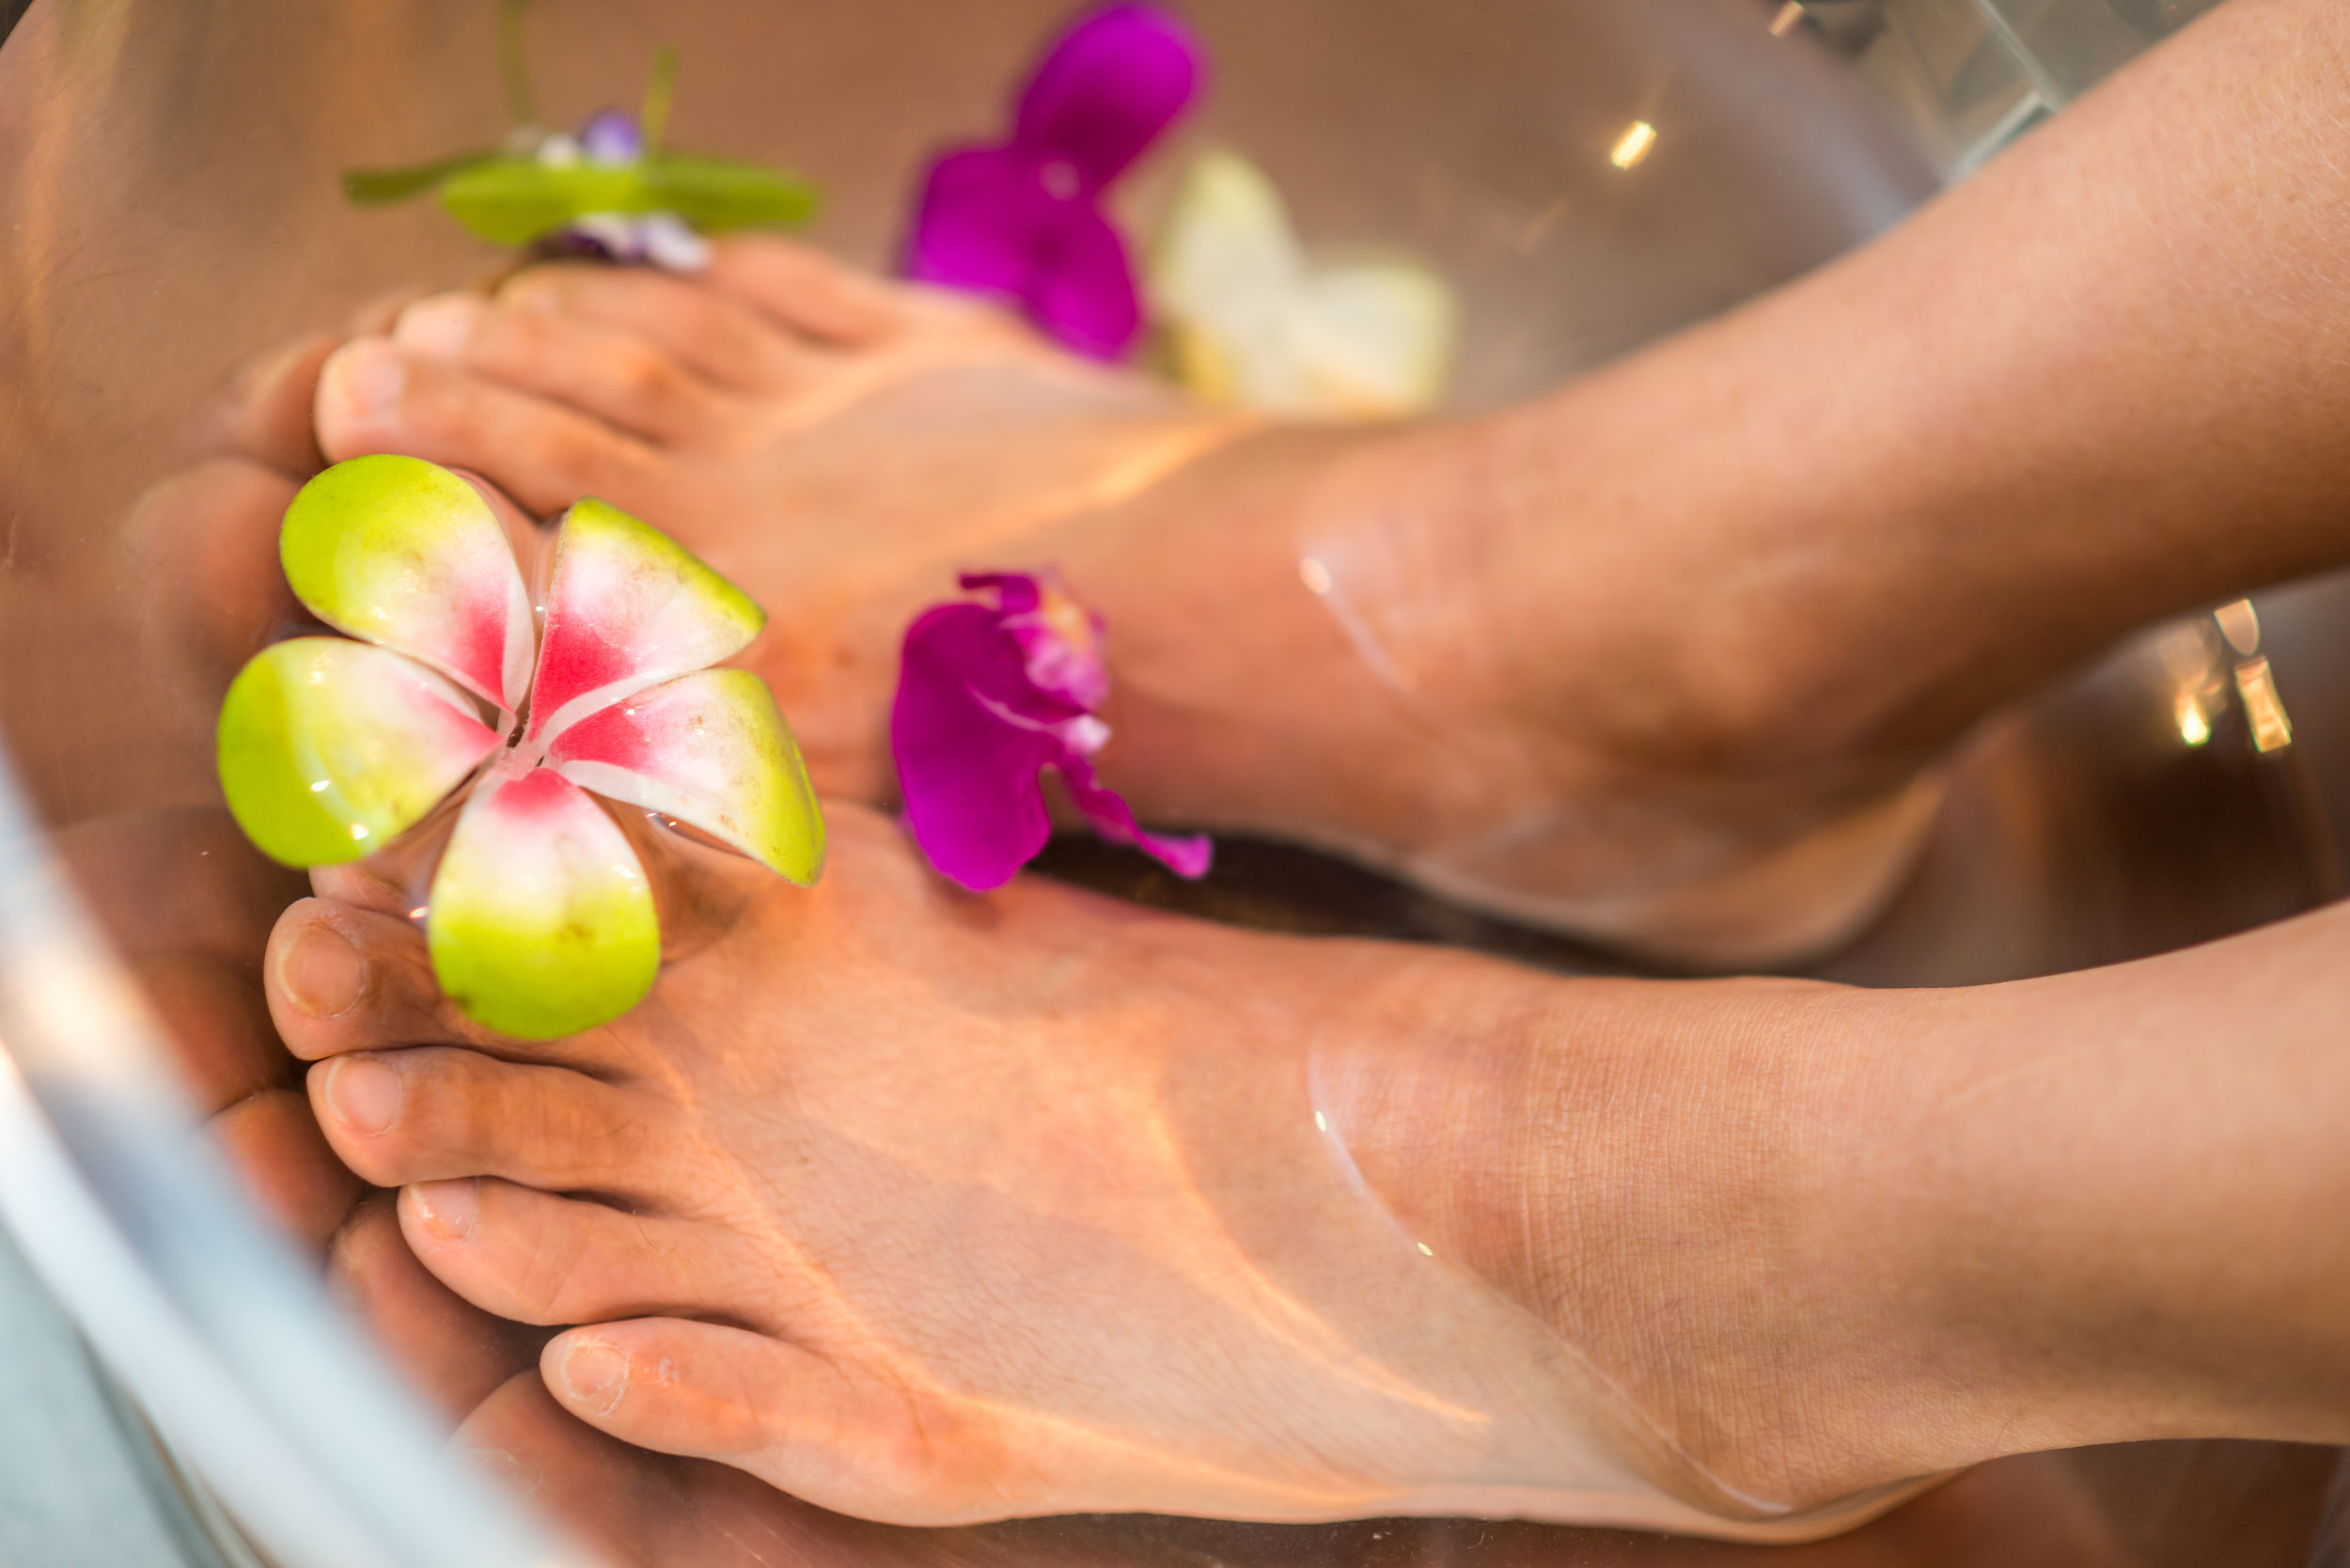 Foot Treatment - Ease your tired, aching feet with this special foot treatment. We gently exfoliate your skin with a sugar scrub and follow with a foot massage/reflexology.